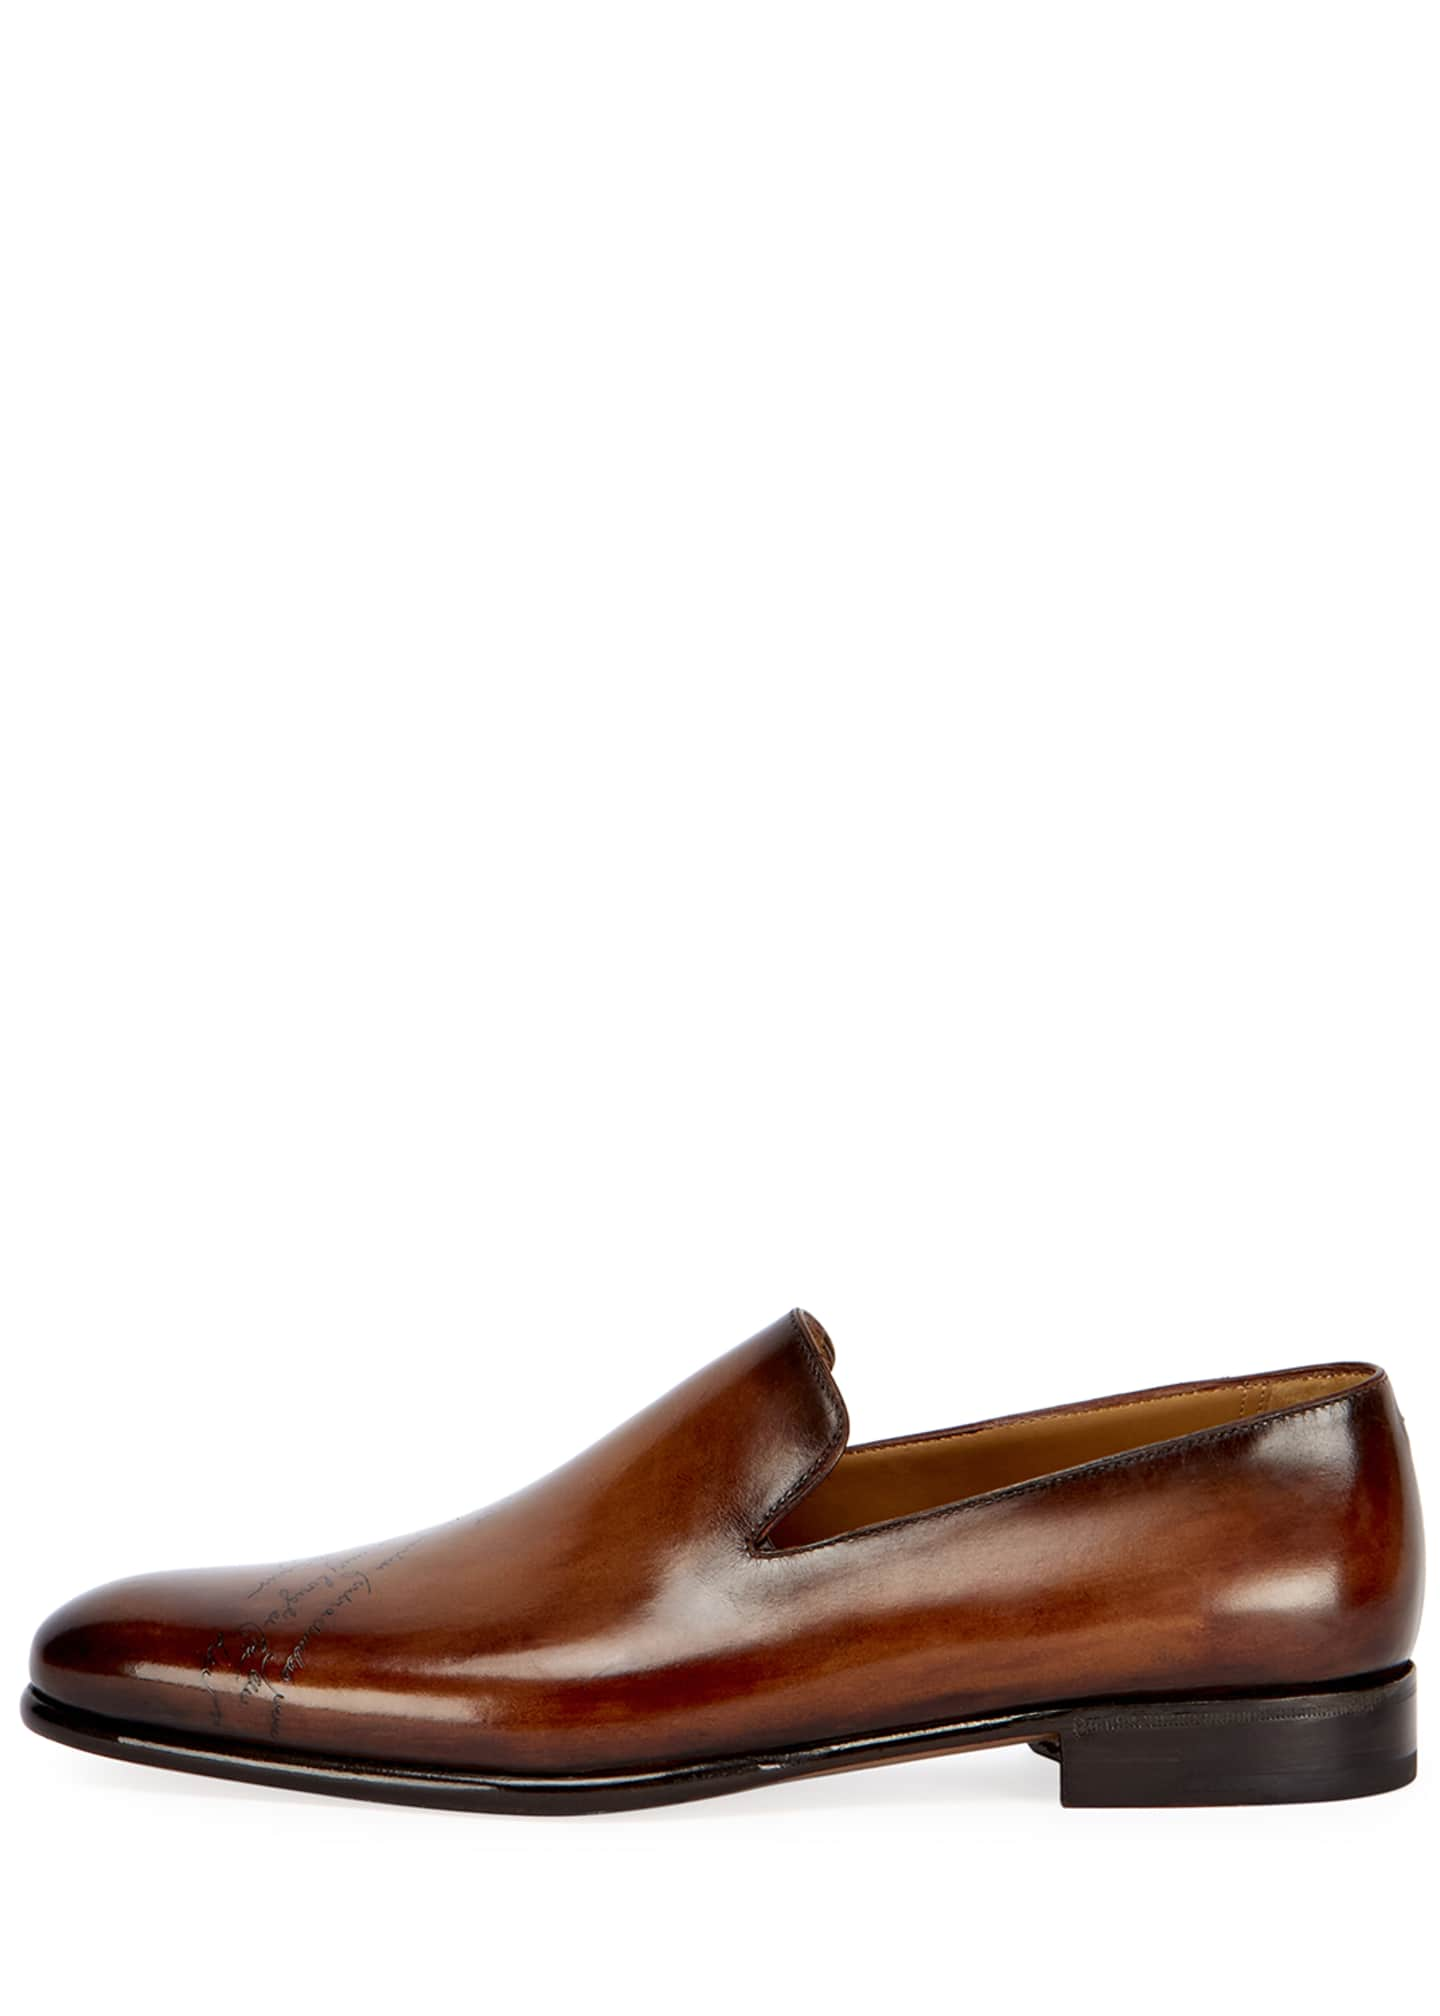 Image 2 of 3: Scritto Leather Slip-On Dress Shoe